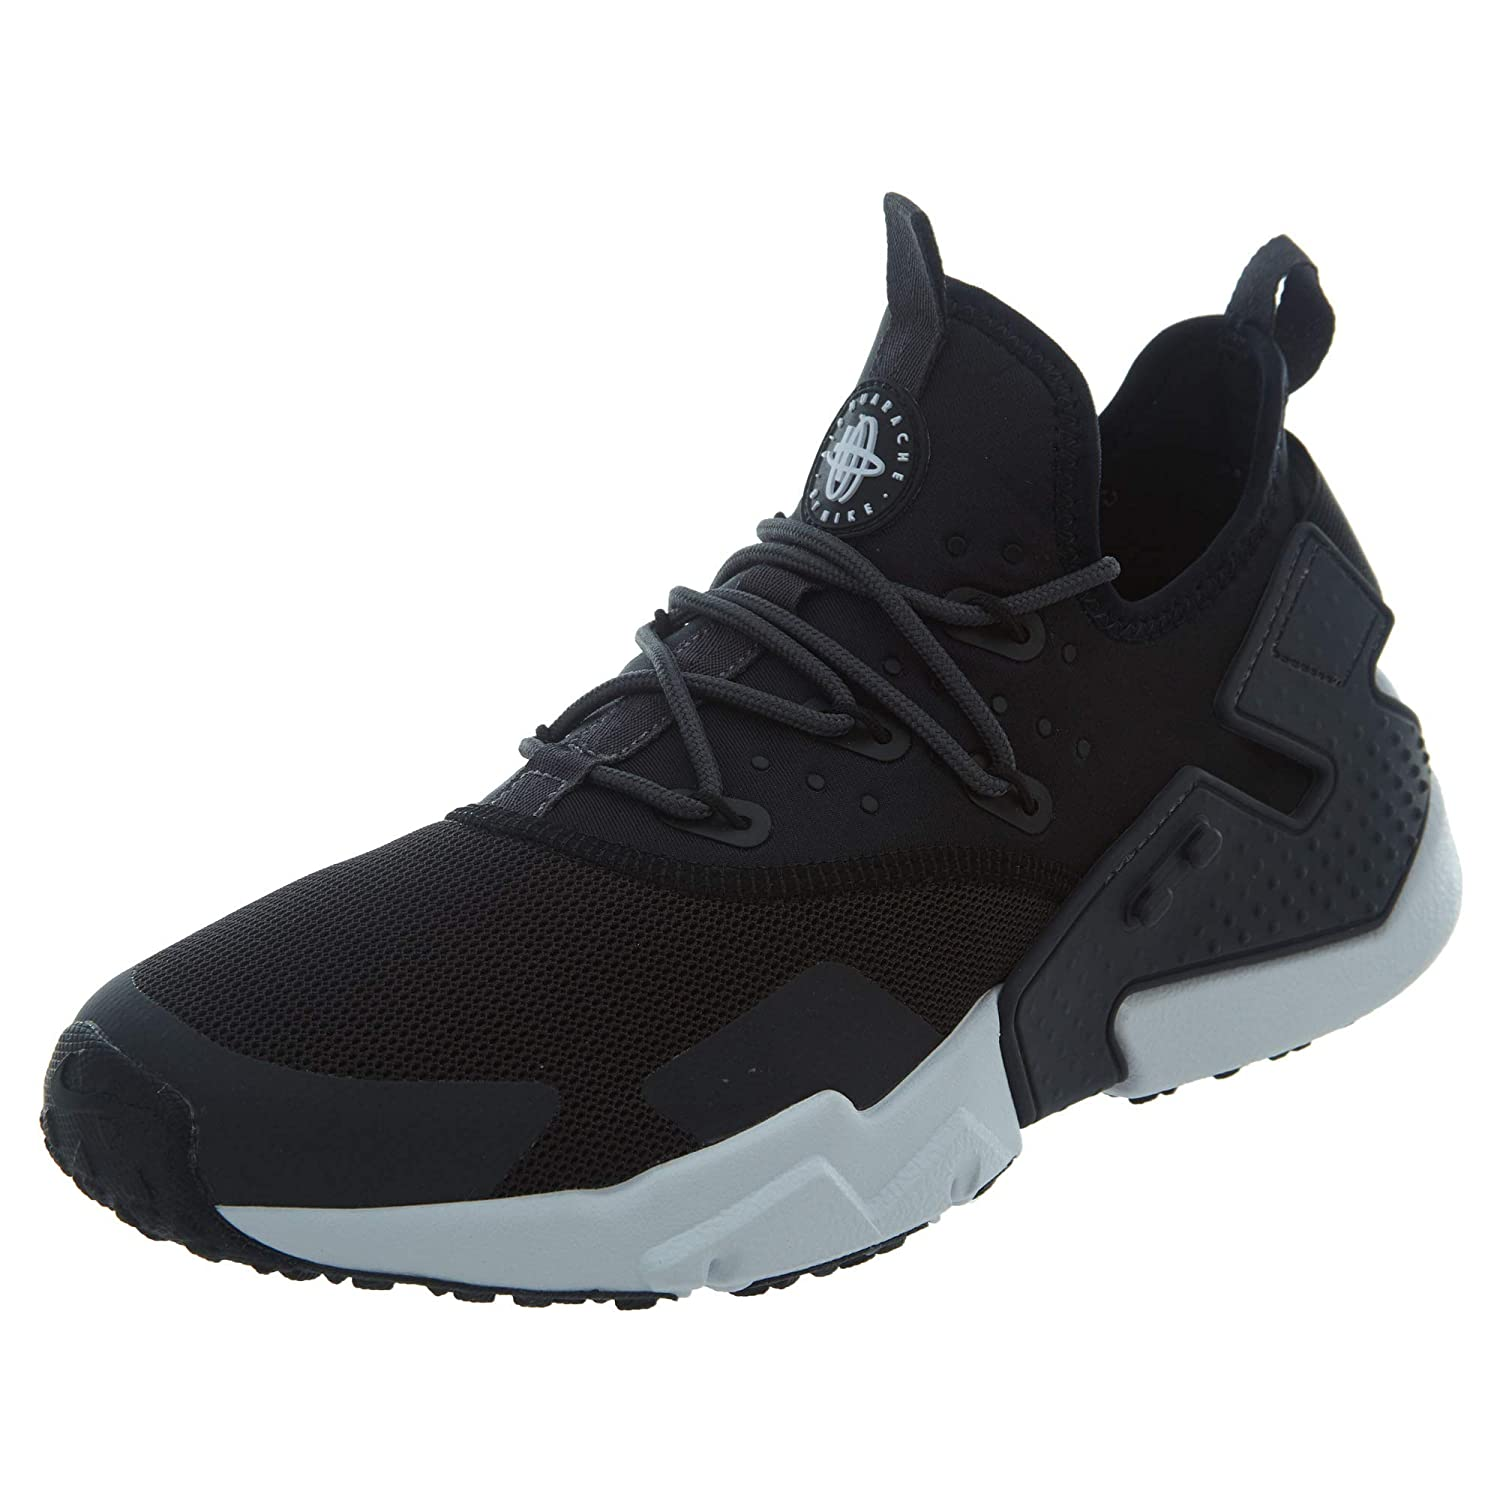 best service d5357 55f3b Amazon.com   Nike Men s Air Huarache Drift Running Shoe, Black Black-Anthracite-White,  8   Athletic